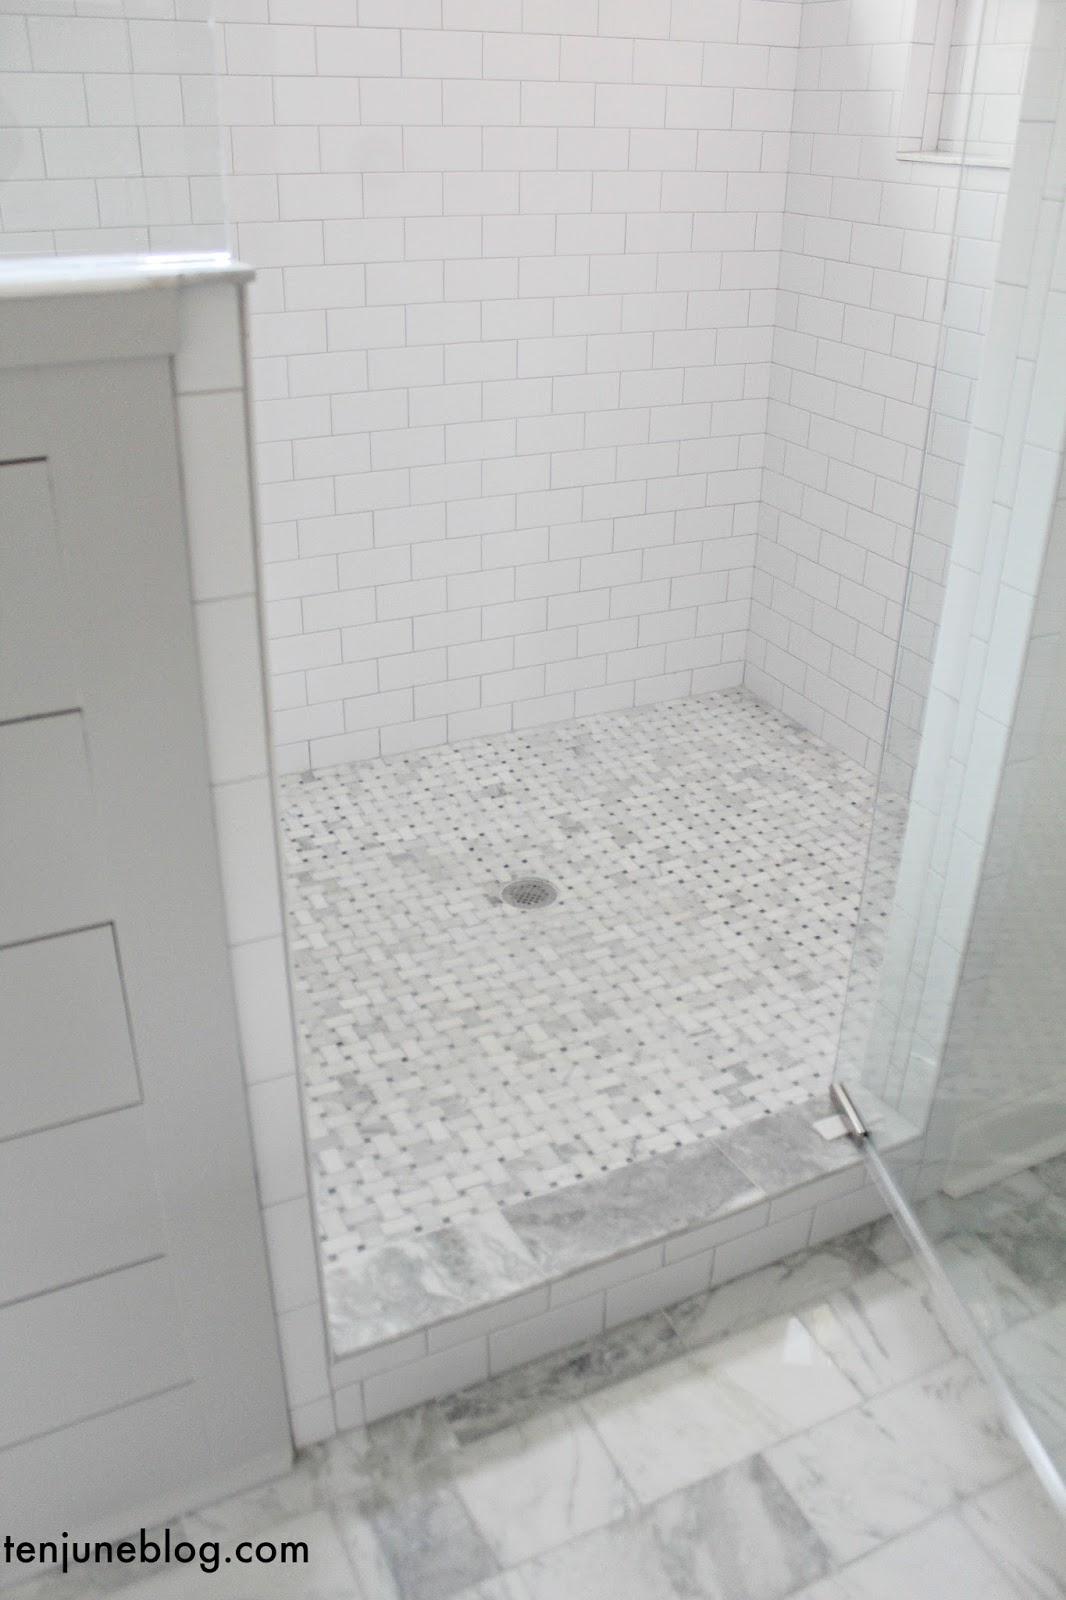 Ten june building our farmhouse tile grout sources master bathroom shower wall tile master bathroom shower floor tile master bathroom grout all rolling fog dailygadgetfo Choice Image